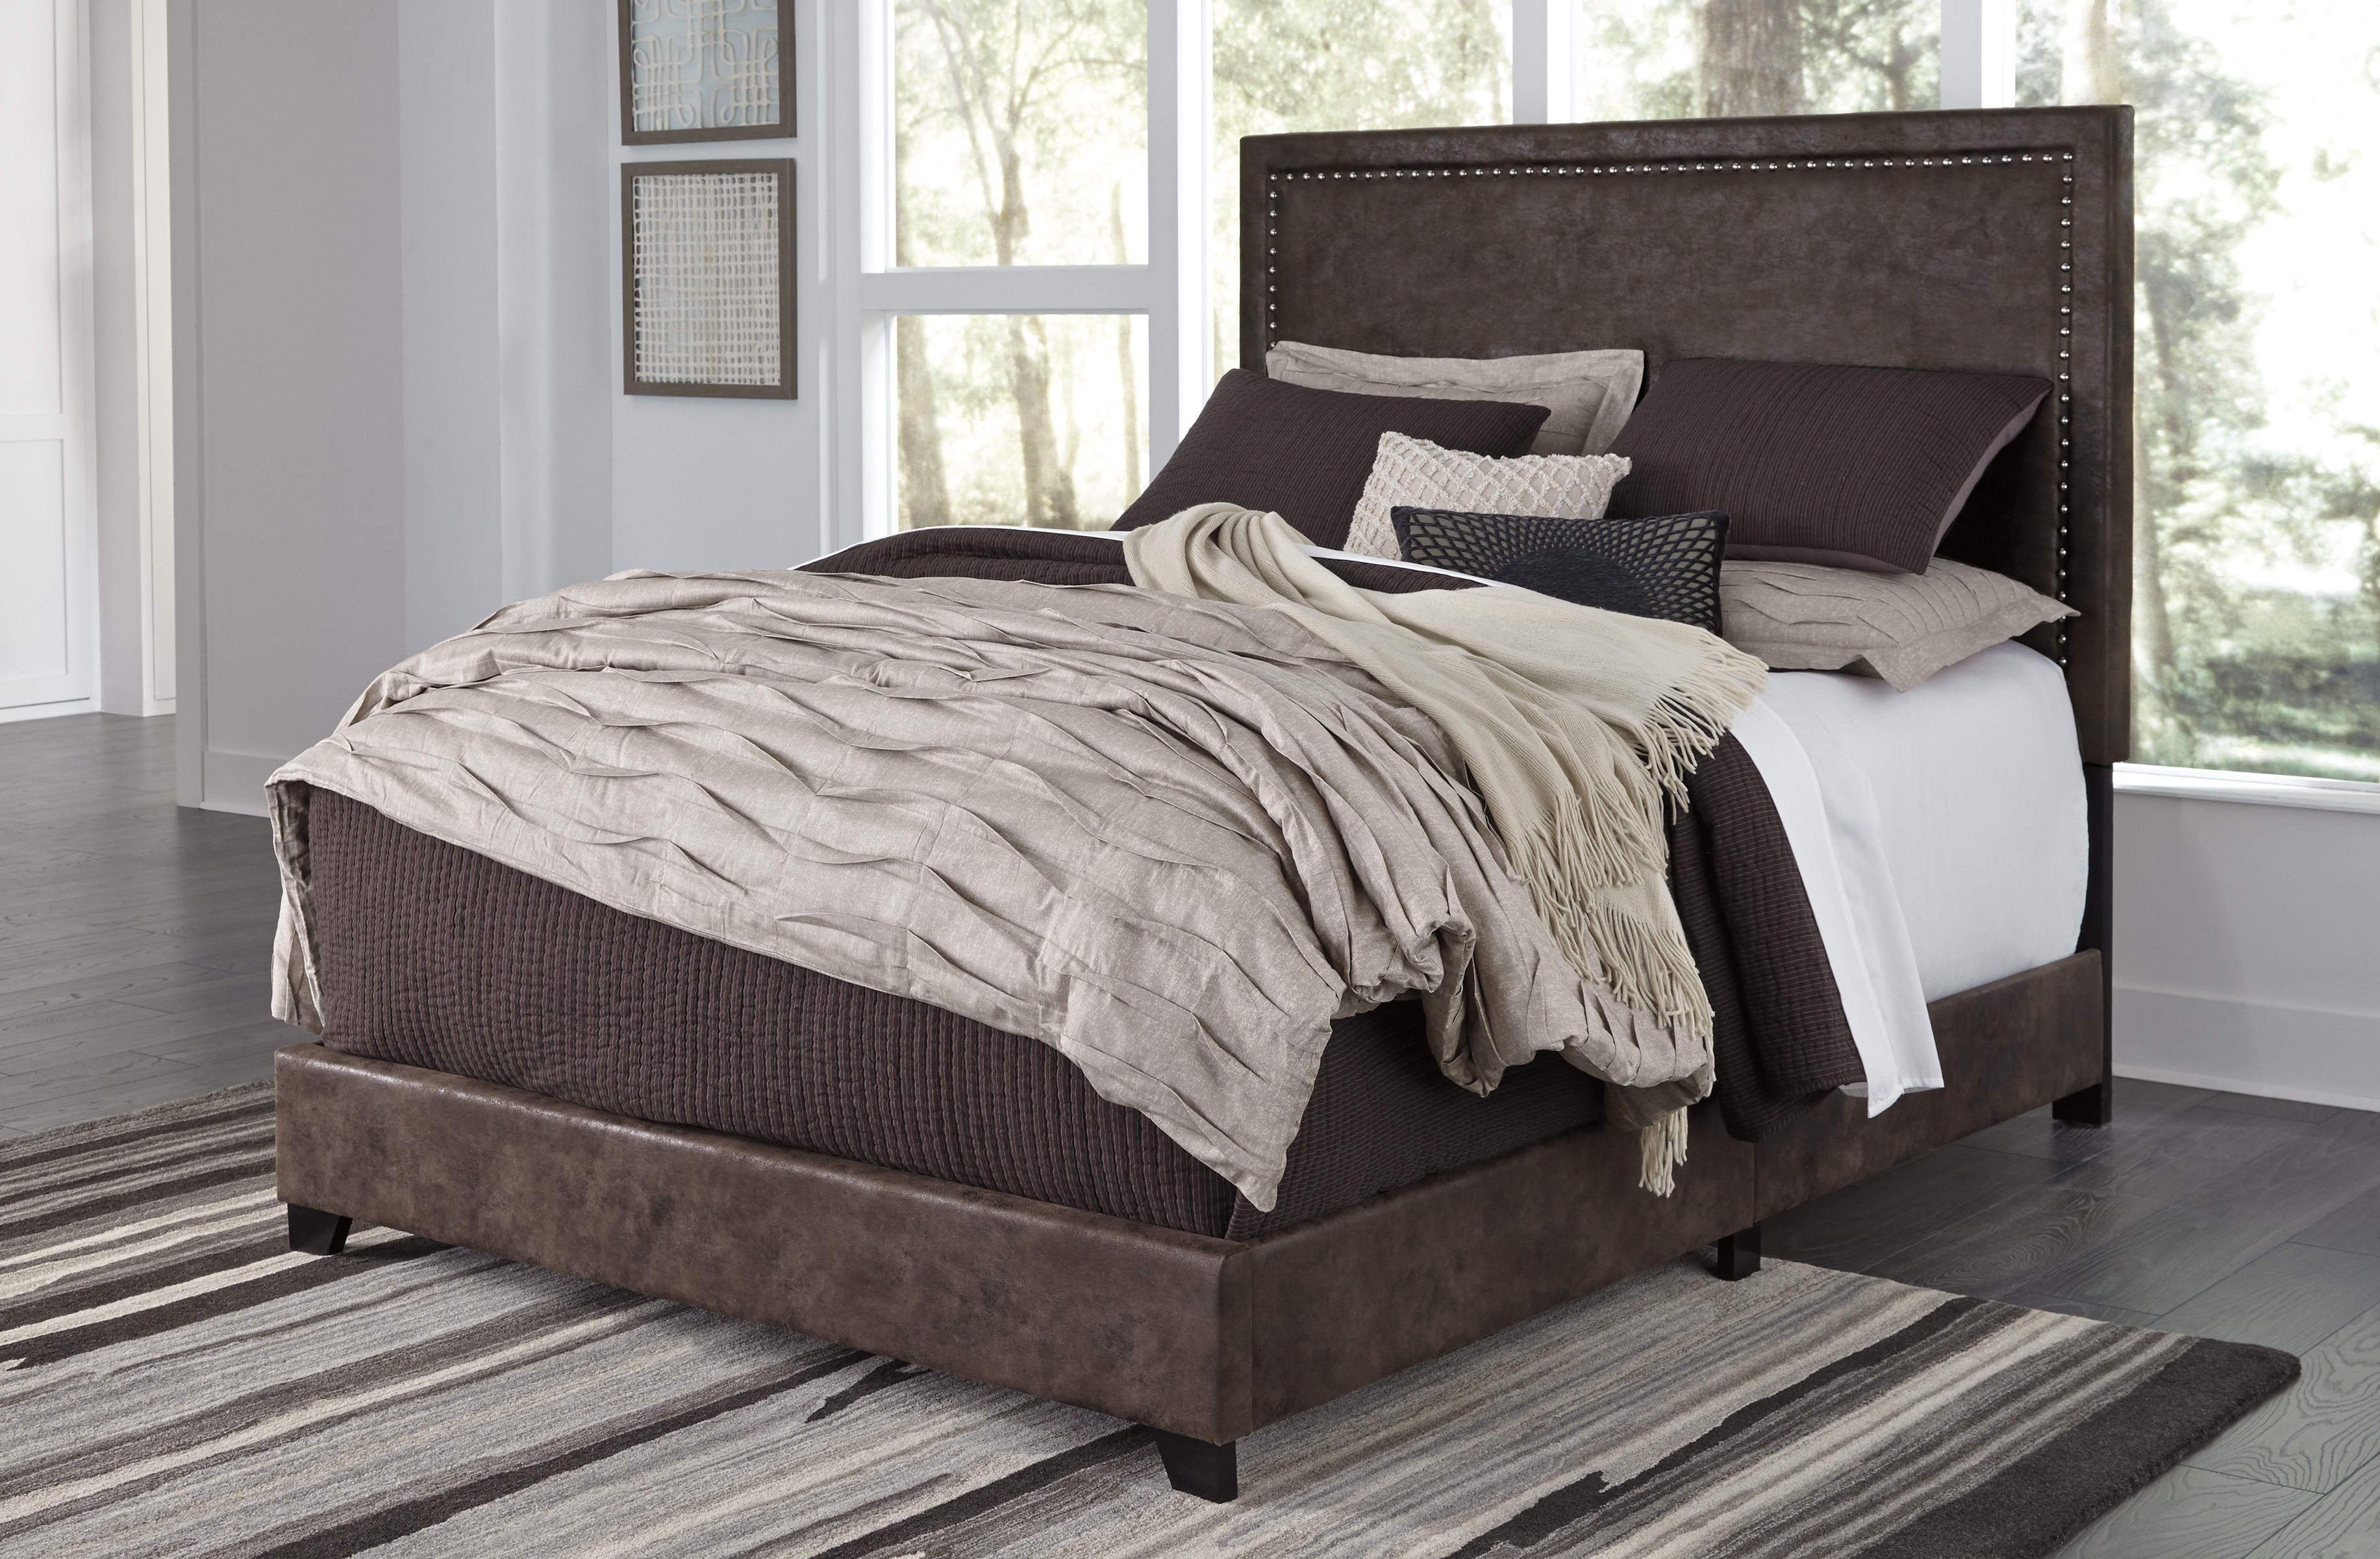 Ashley Furniture Dolante King Upholstered Bed The Classy Home